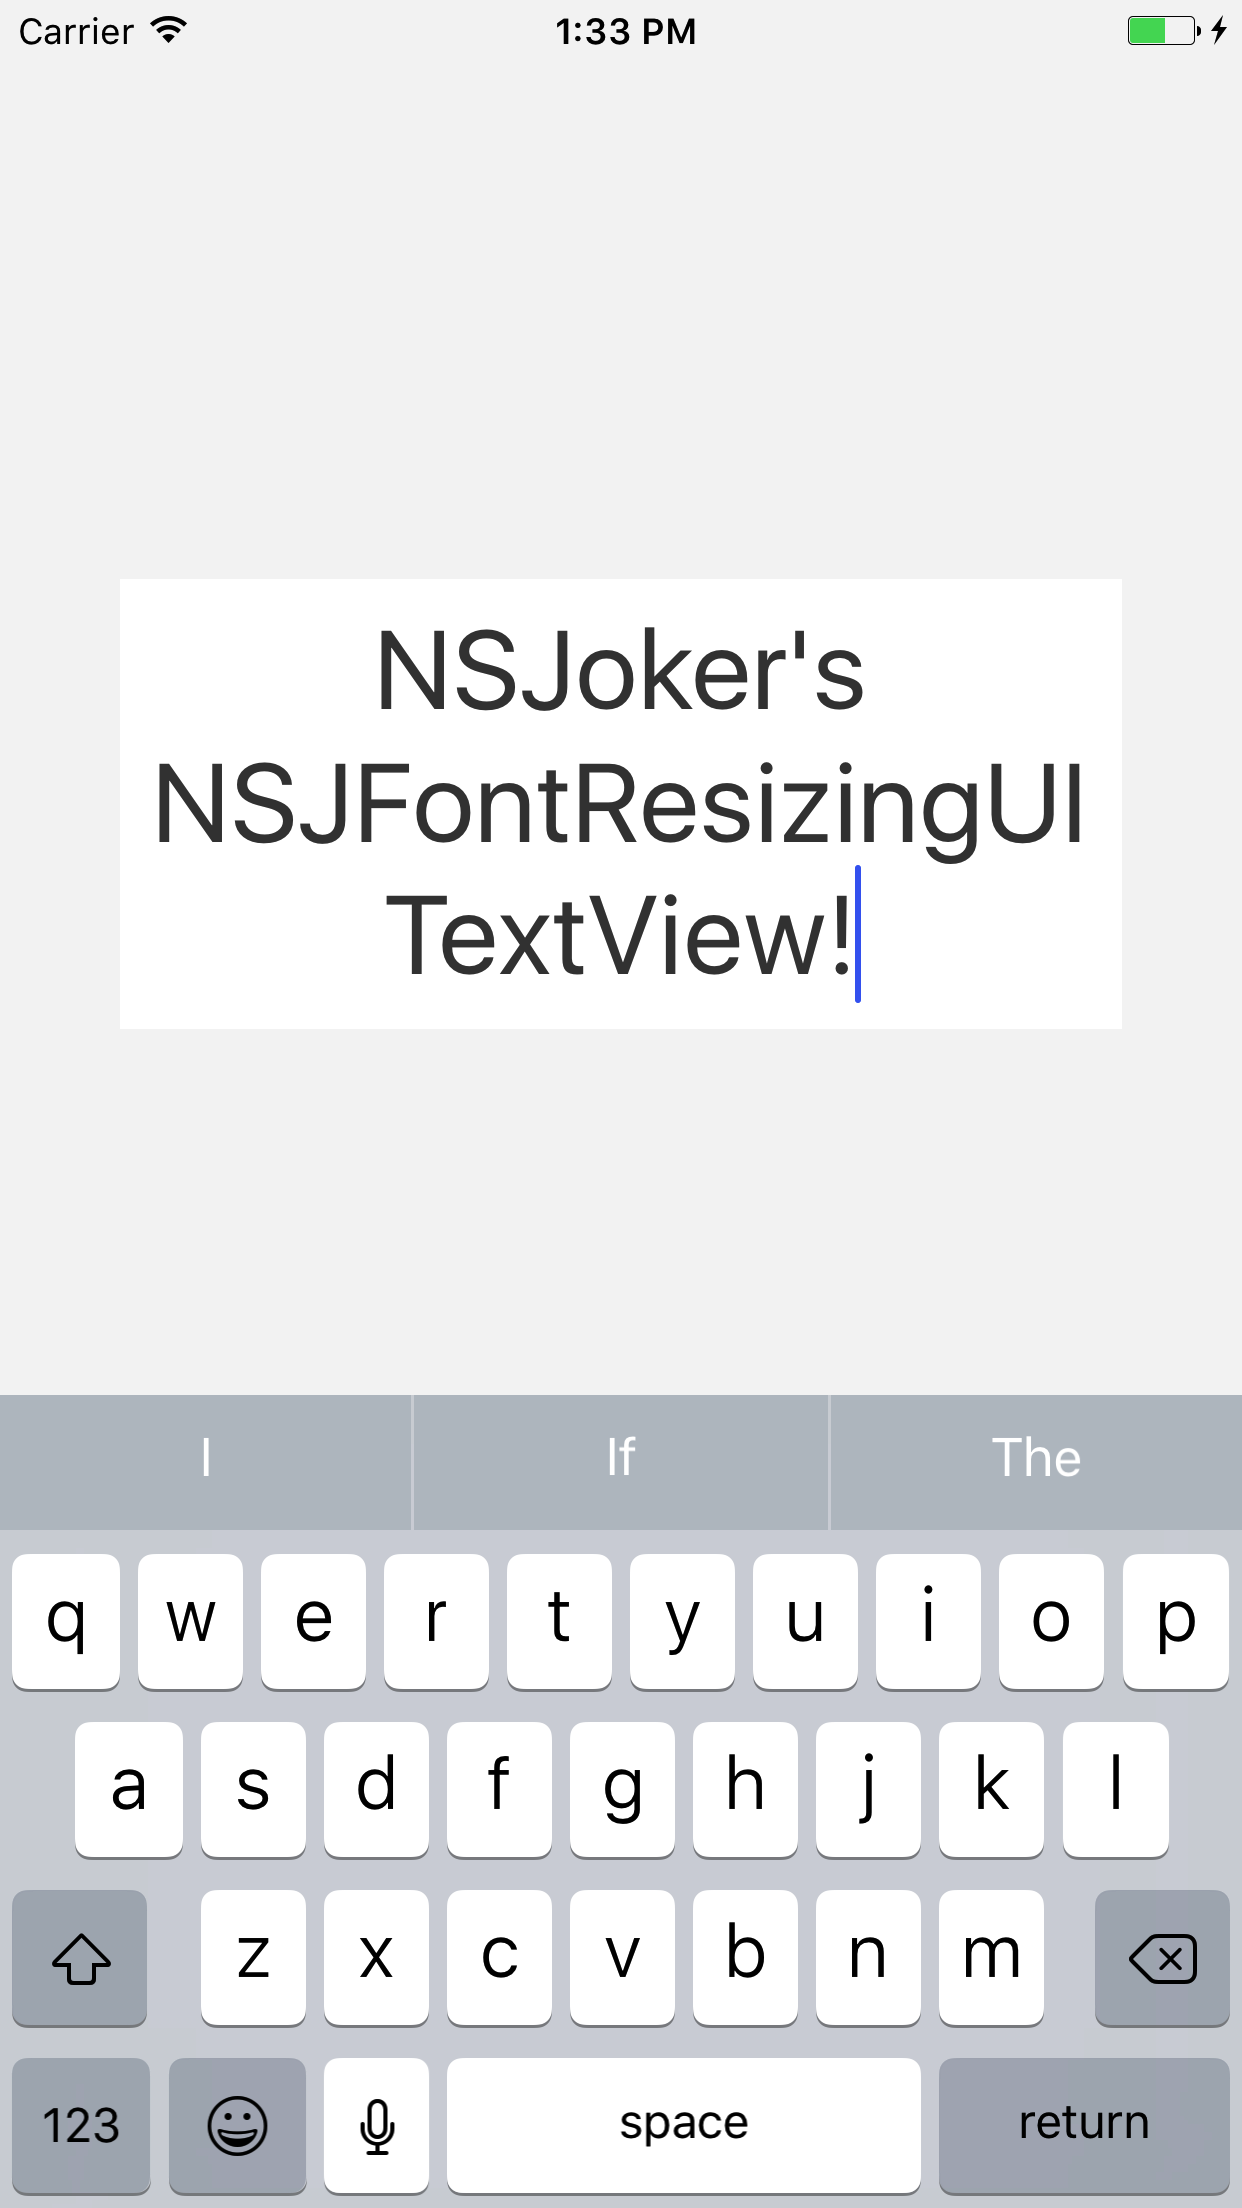 NSJFontResizingUITextView screenshot